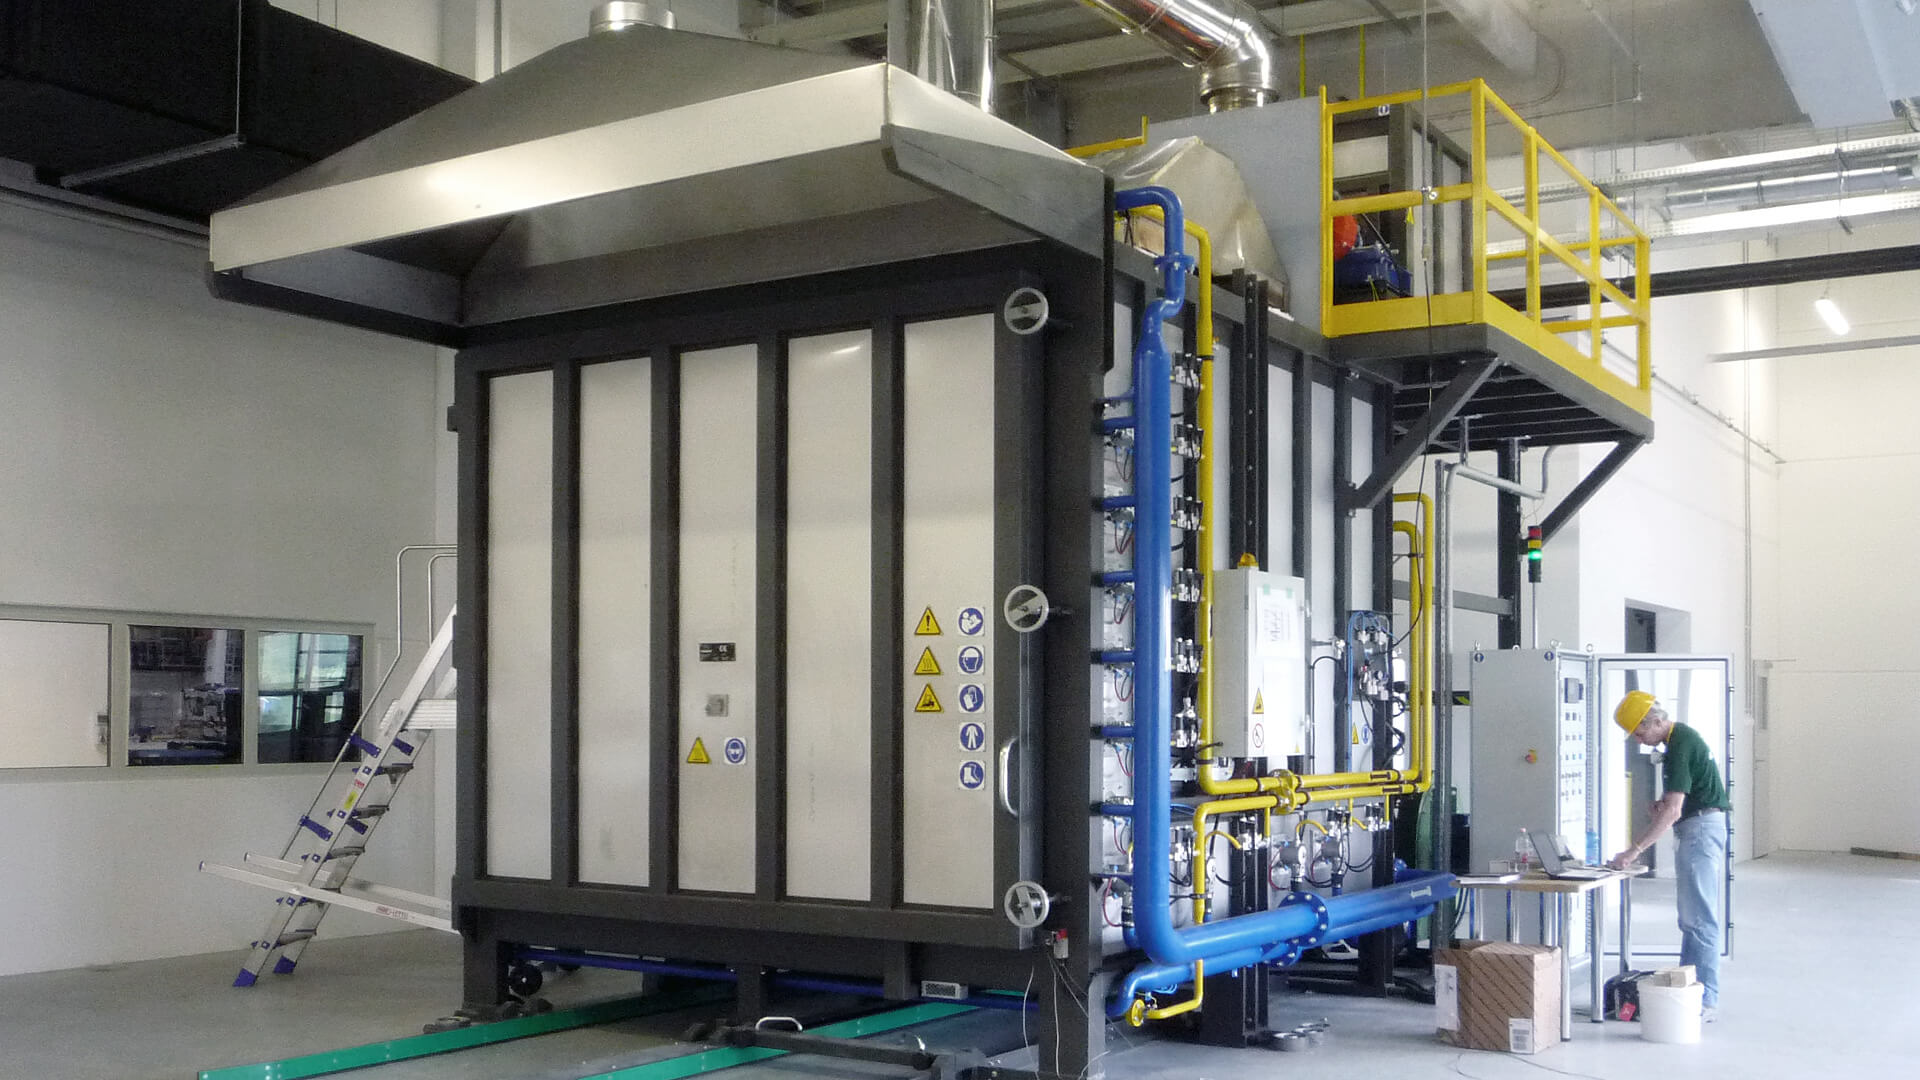 Forno industriale per Chamber Furnace with  stacker truck for loading/unloading | Pagnotta Termomeccanica